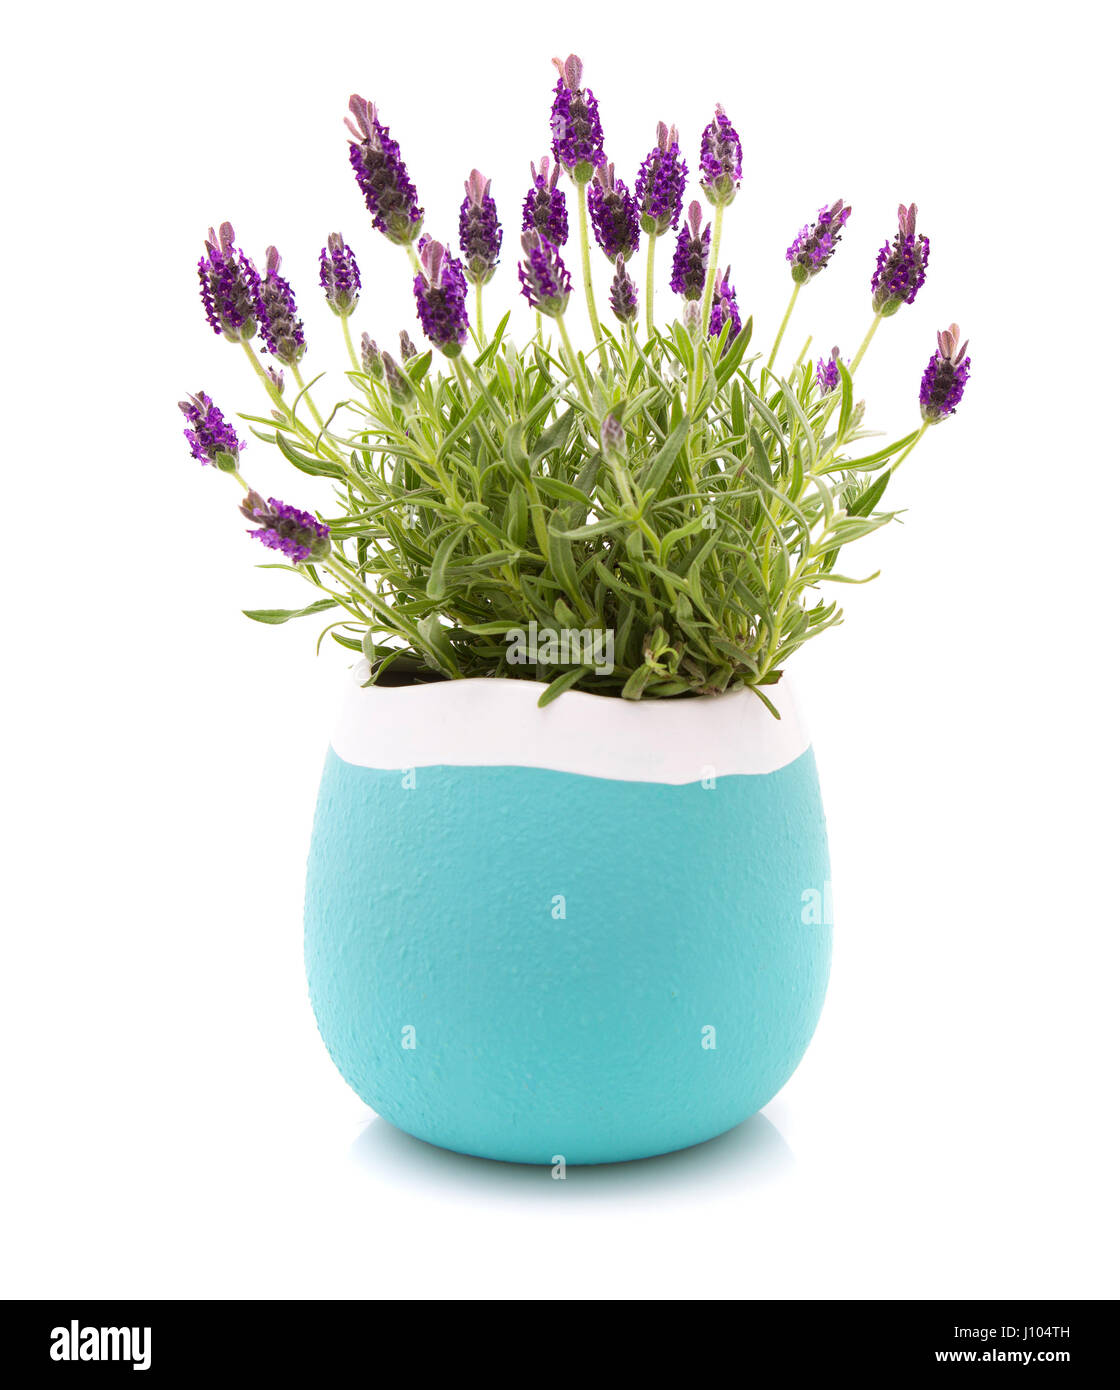 Lavender stoechas plant in a blue and white flower pot on white lavender stoechas plant in a blue and white flower pot on white background mightylinksfo